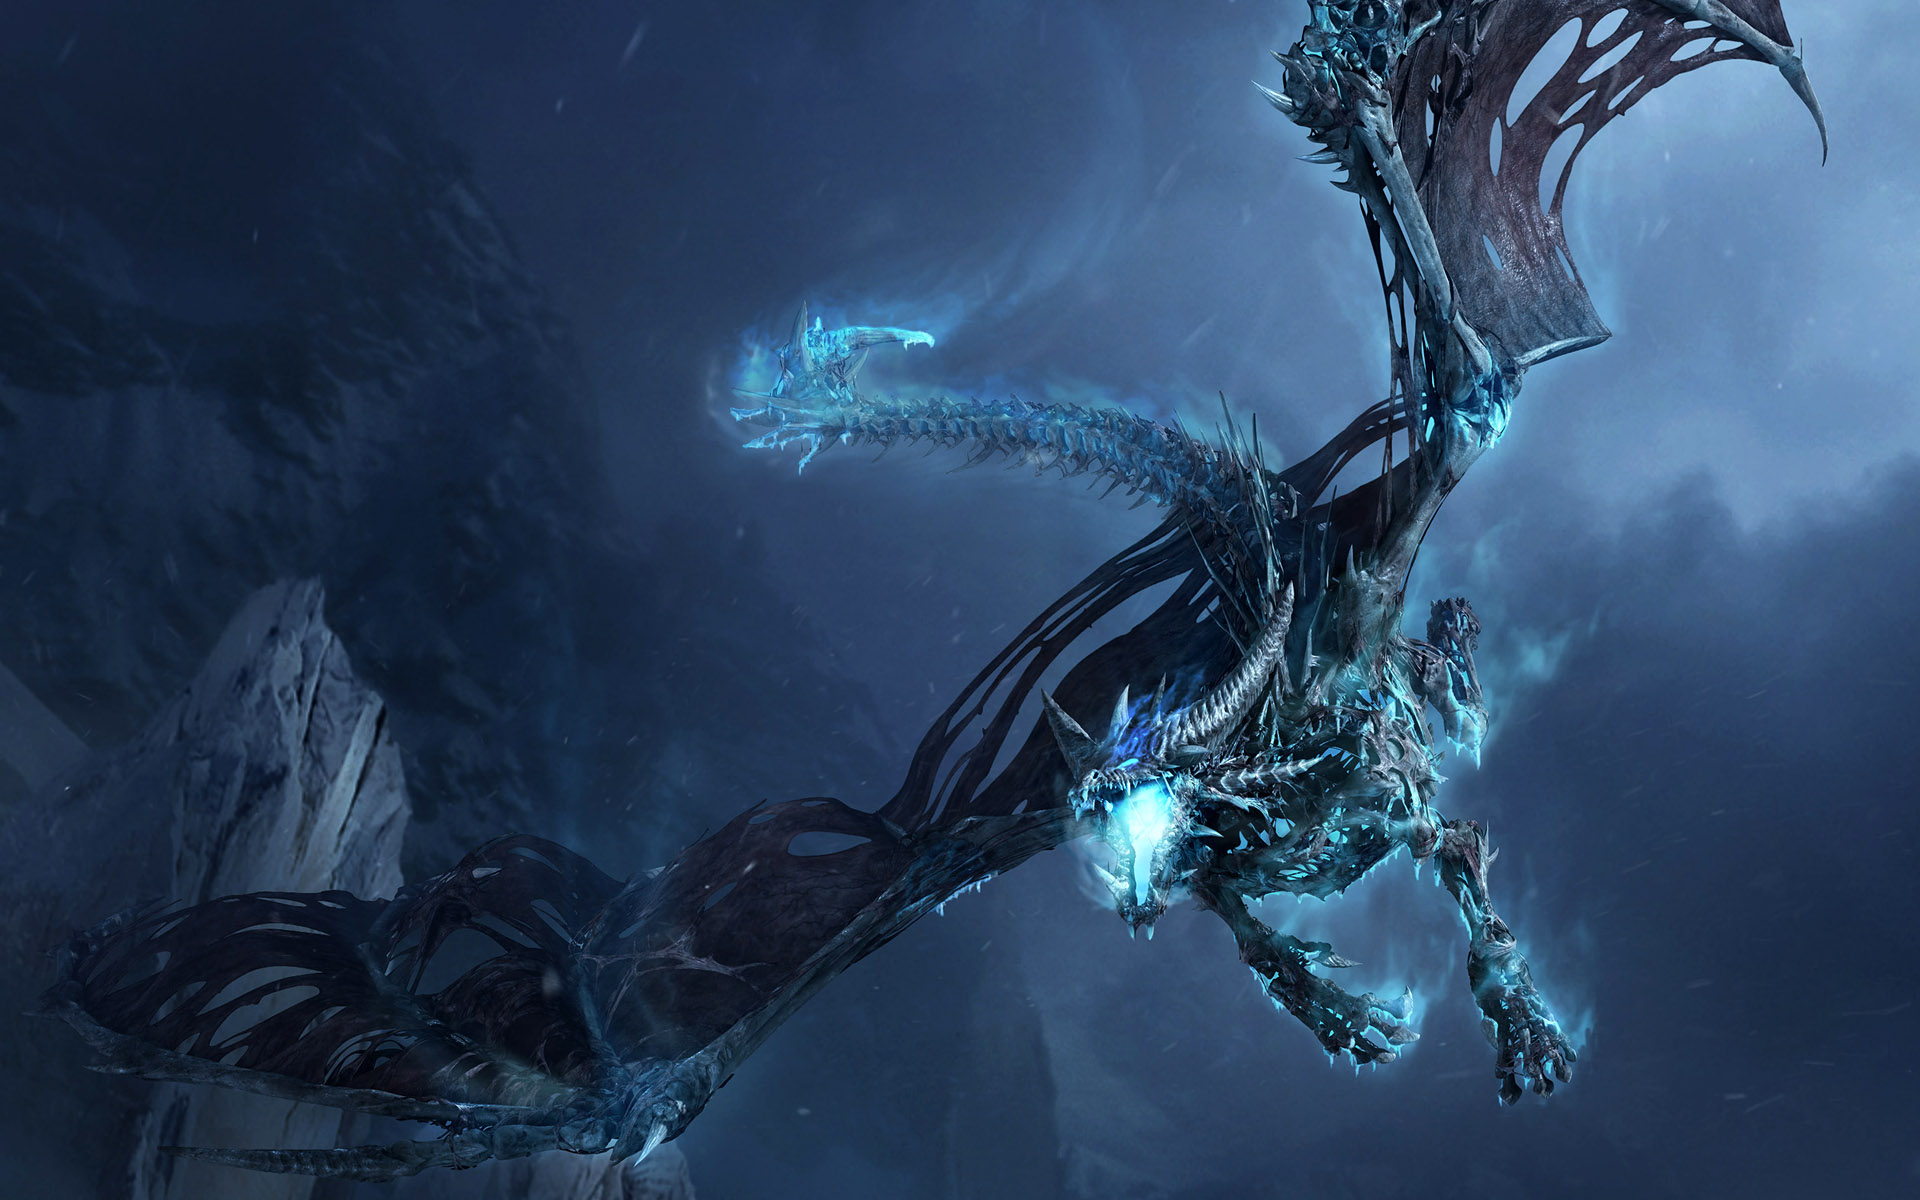 Stunning HD Wallpaper's Collection: Free Cool Fantasy Wallpapers